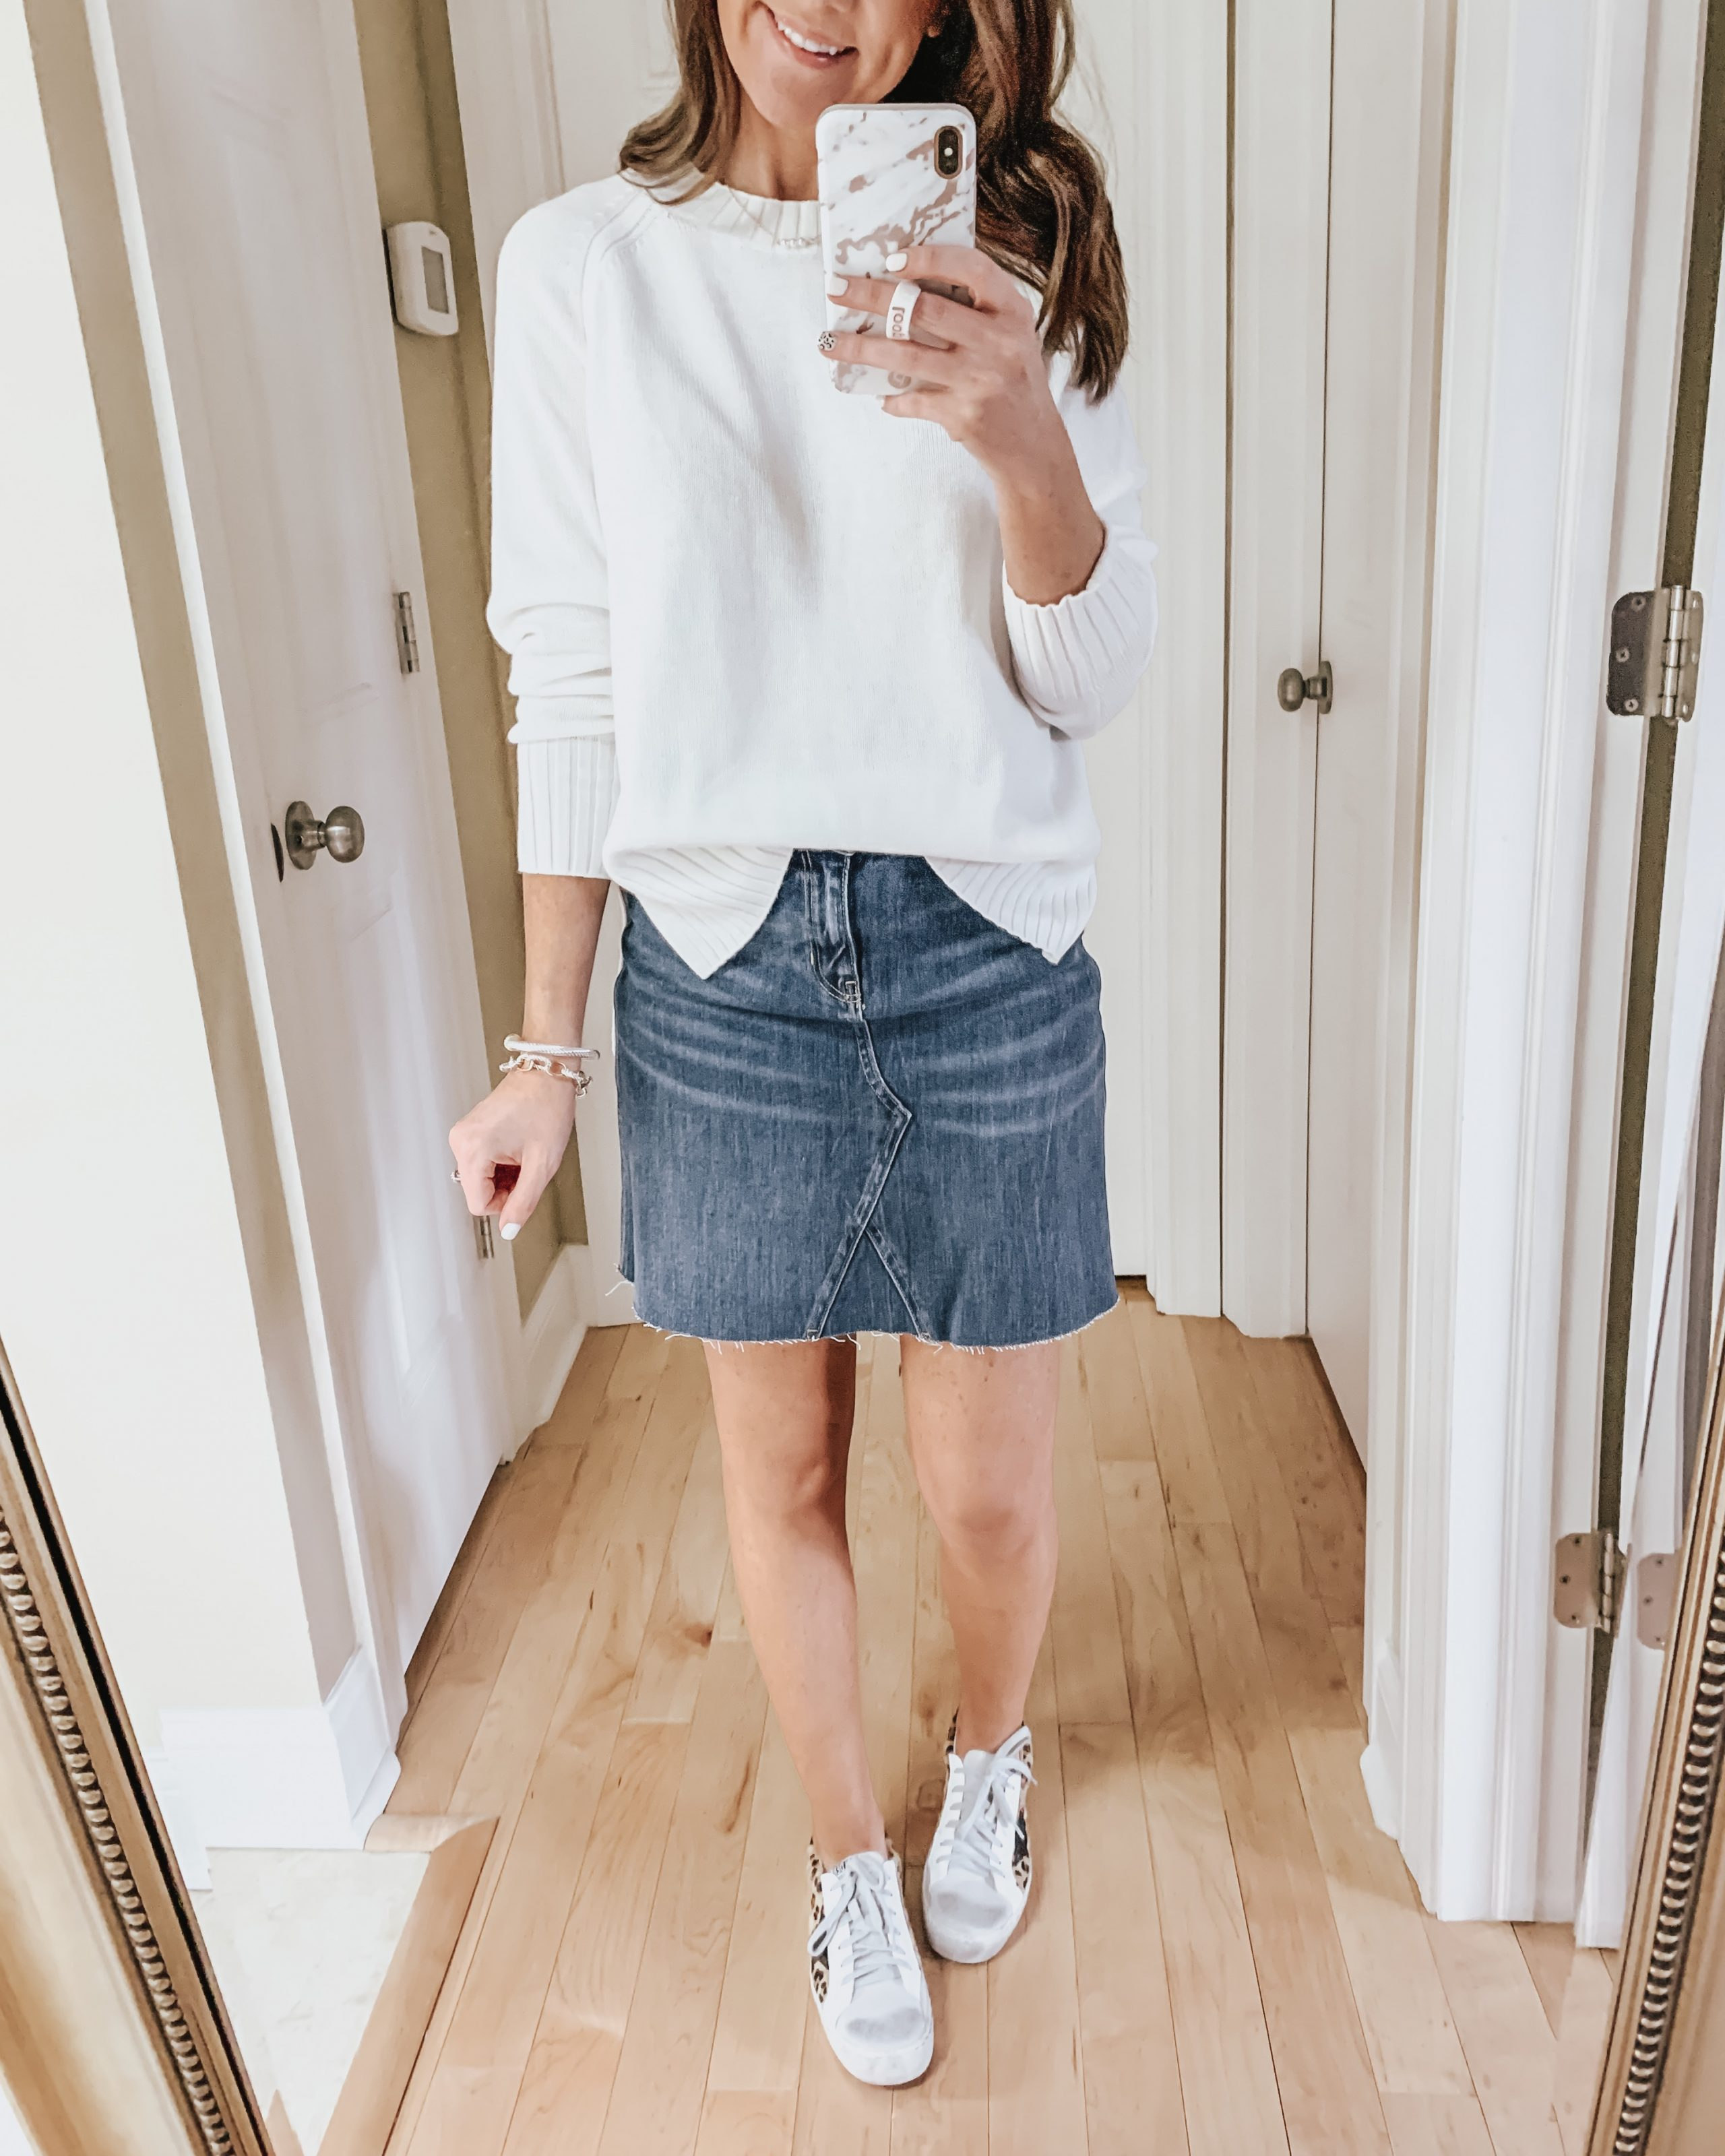 six ways to style a skirt, sneakers, denim skirt, sweater, Old Navy